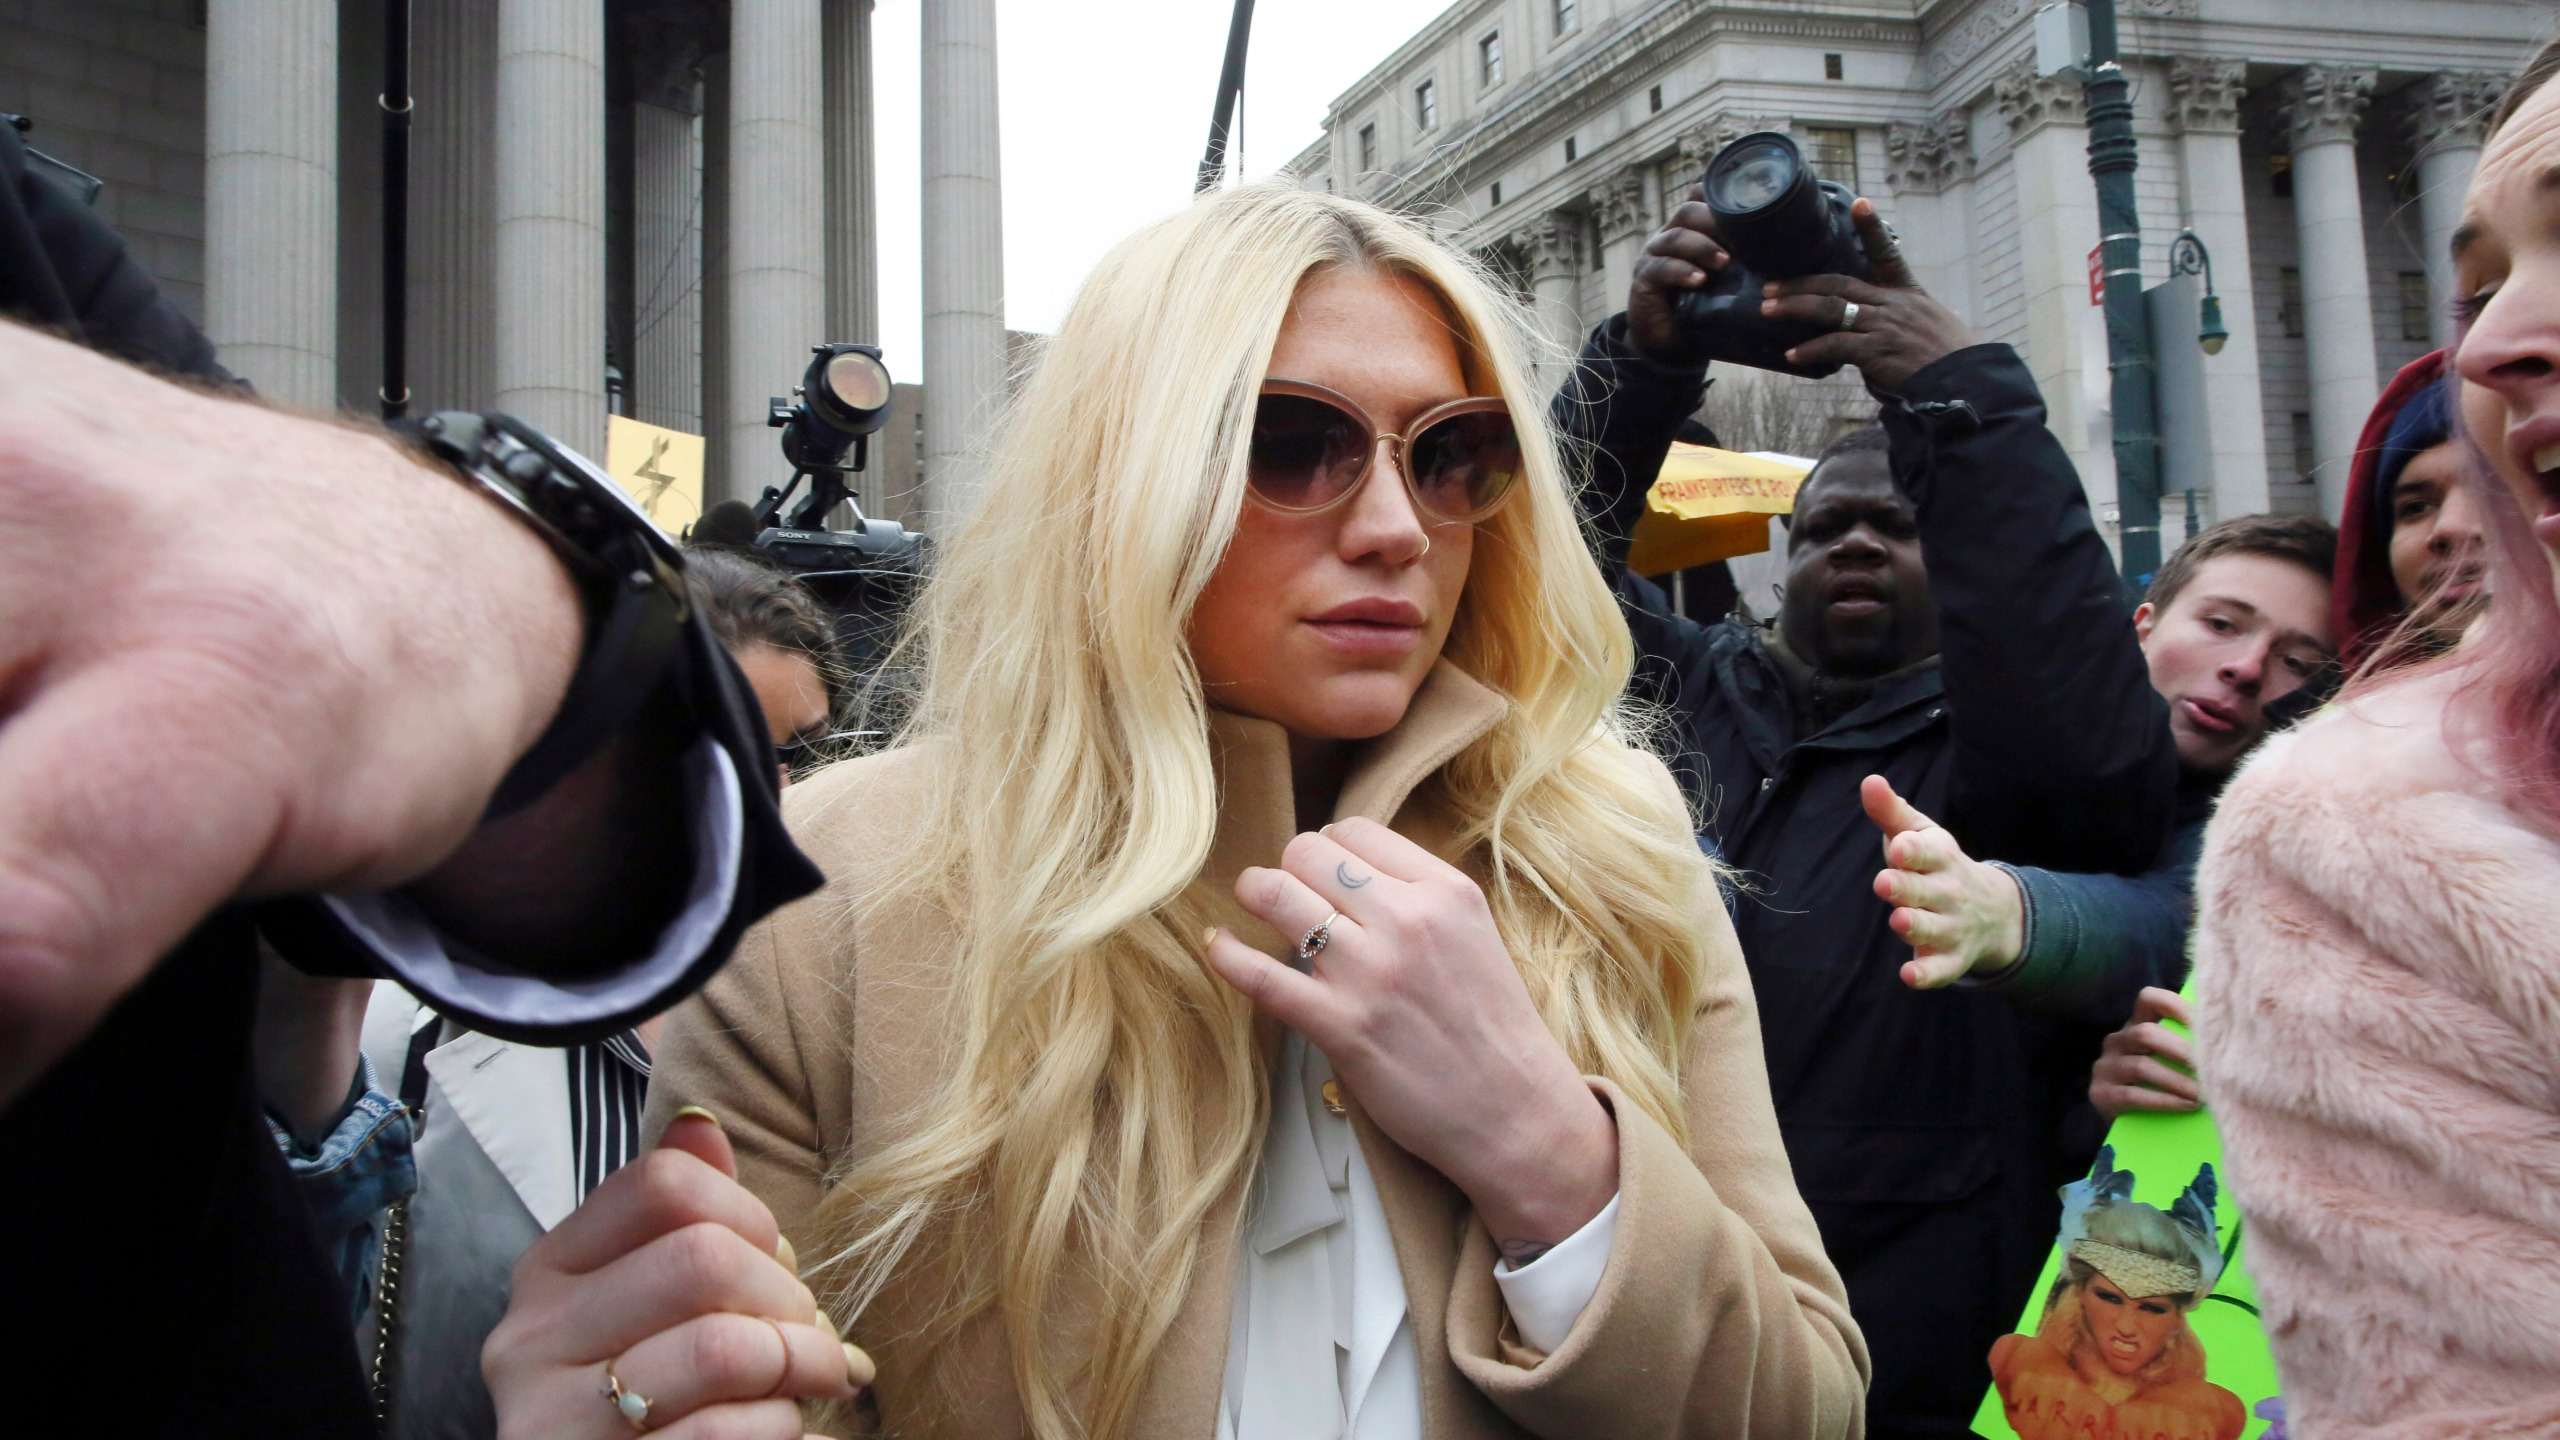 In this Feb. 19, 2016, file photo, pop star Kesha leaves Supreme court in New York after a hearing involving her producer, Dr. Luke. (AP Photo/Mary Altaffer, File)